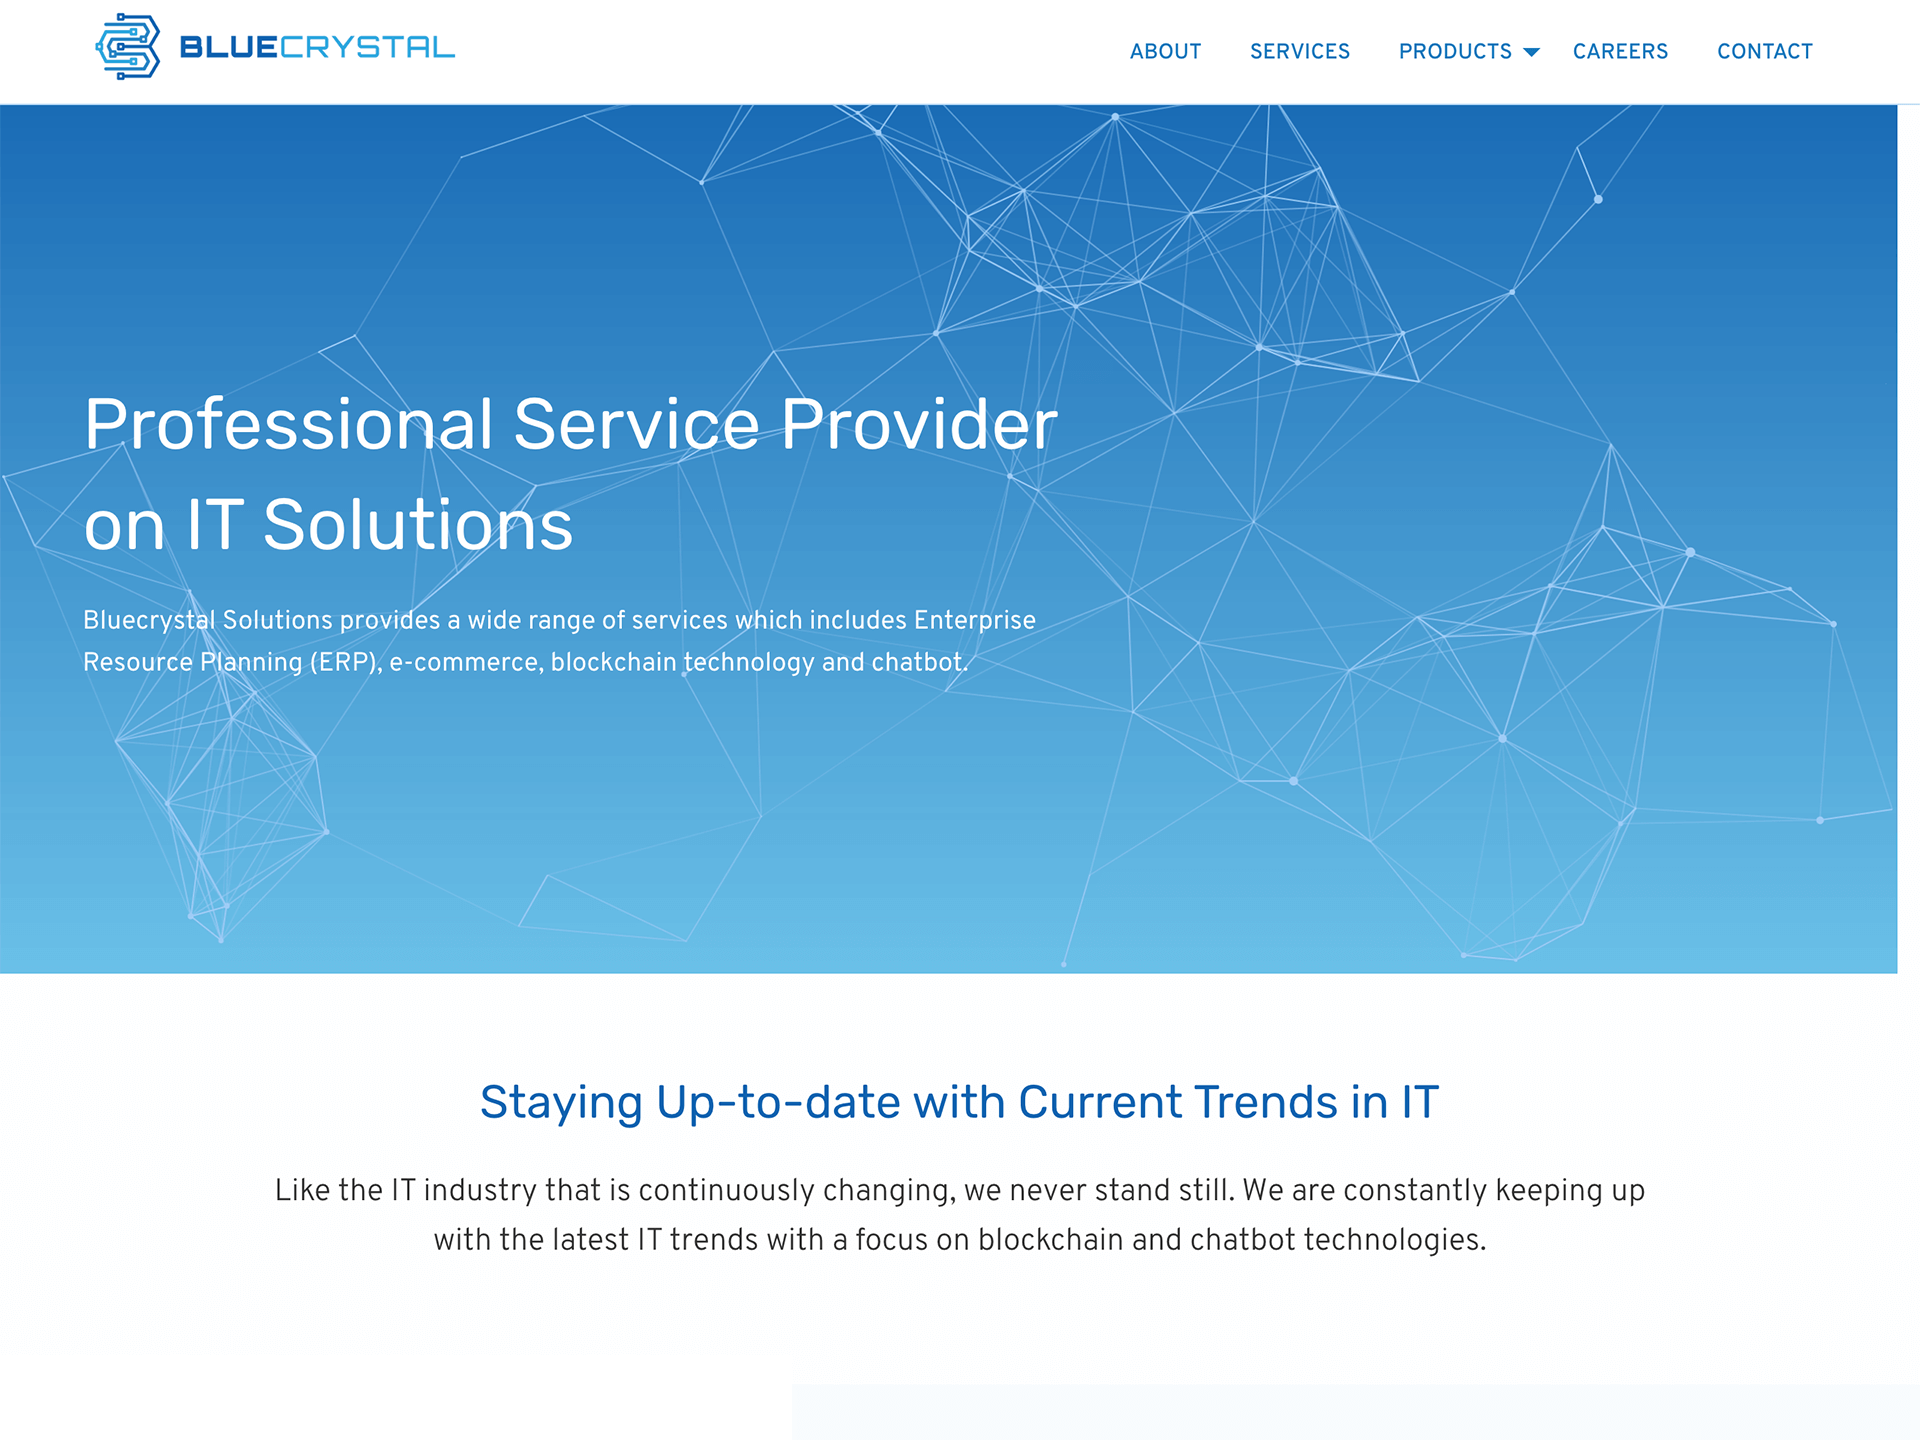 Bluecrystal Solutions website